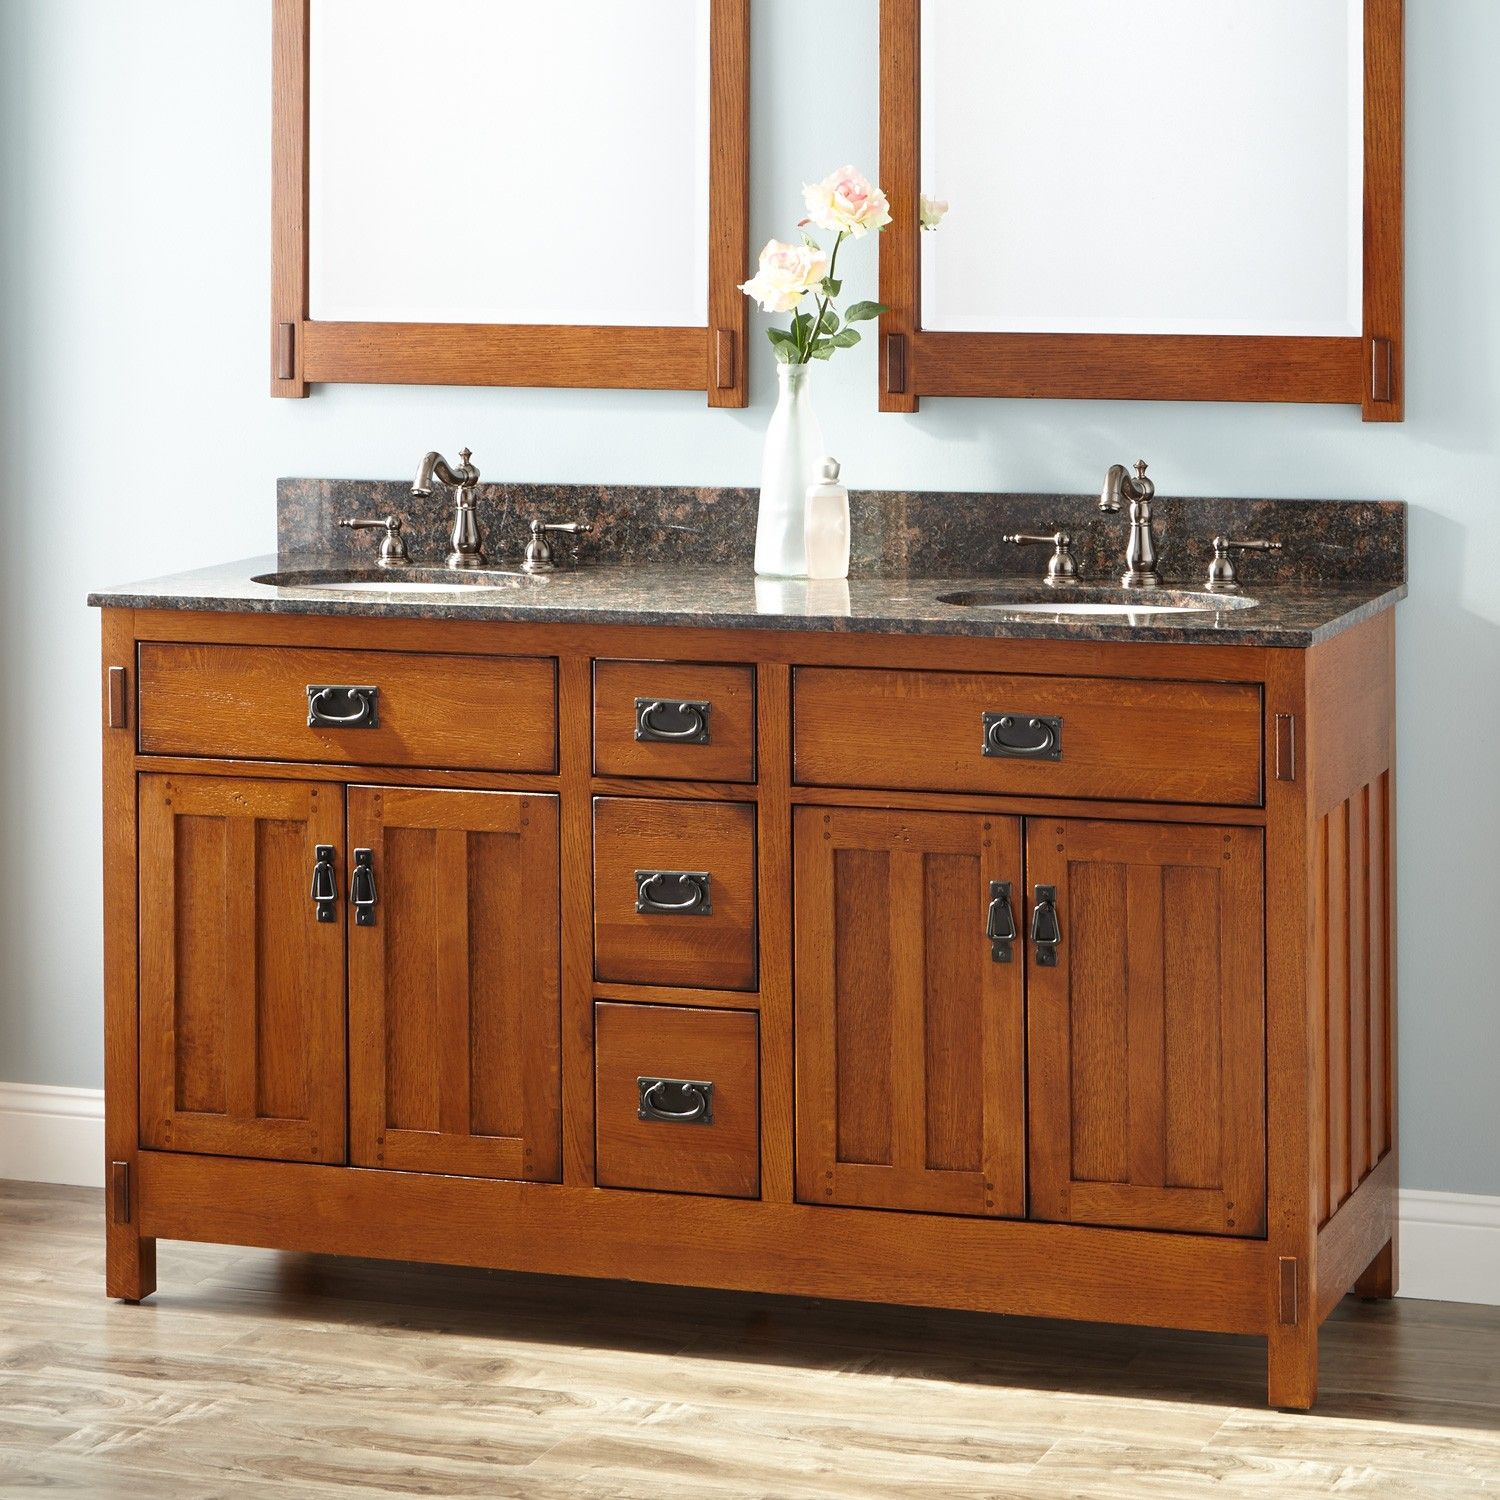 "Craftsman Style Bathroom Faucets: 60"" American Craftsman Double Vanity For Undermount Sinks"